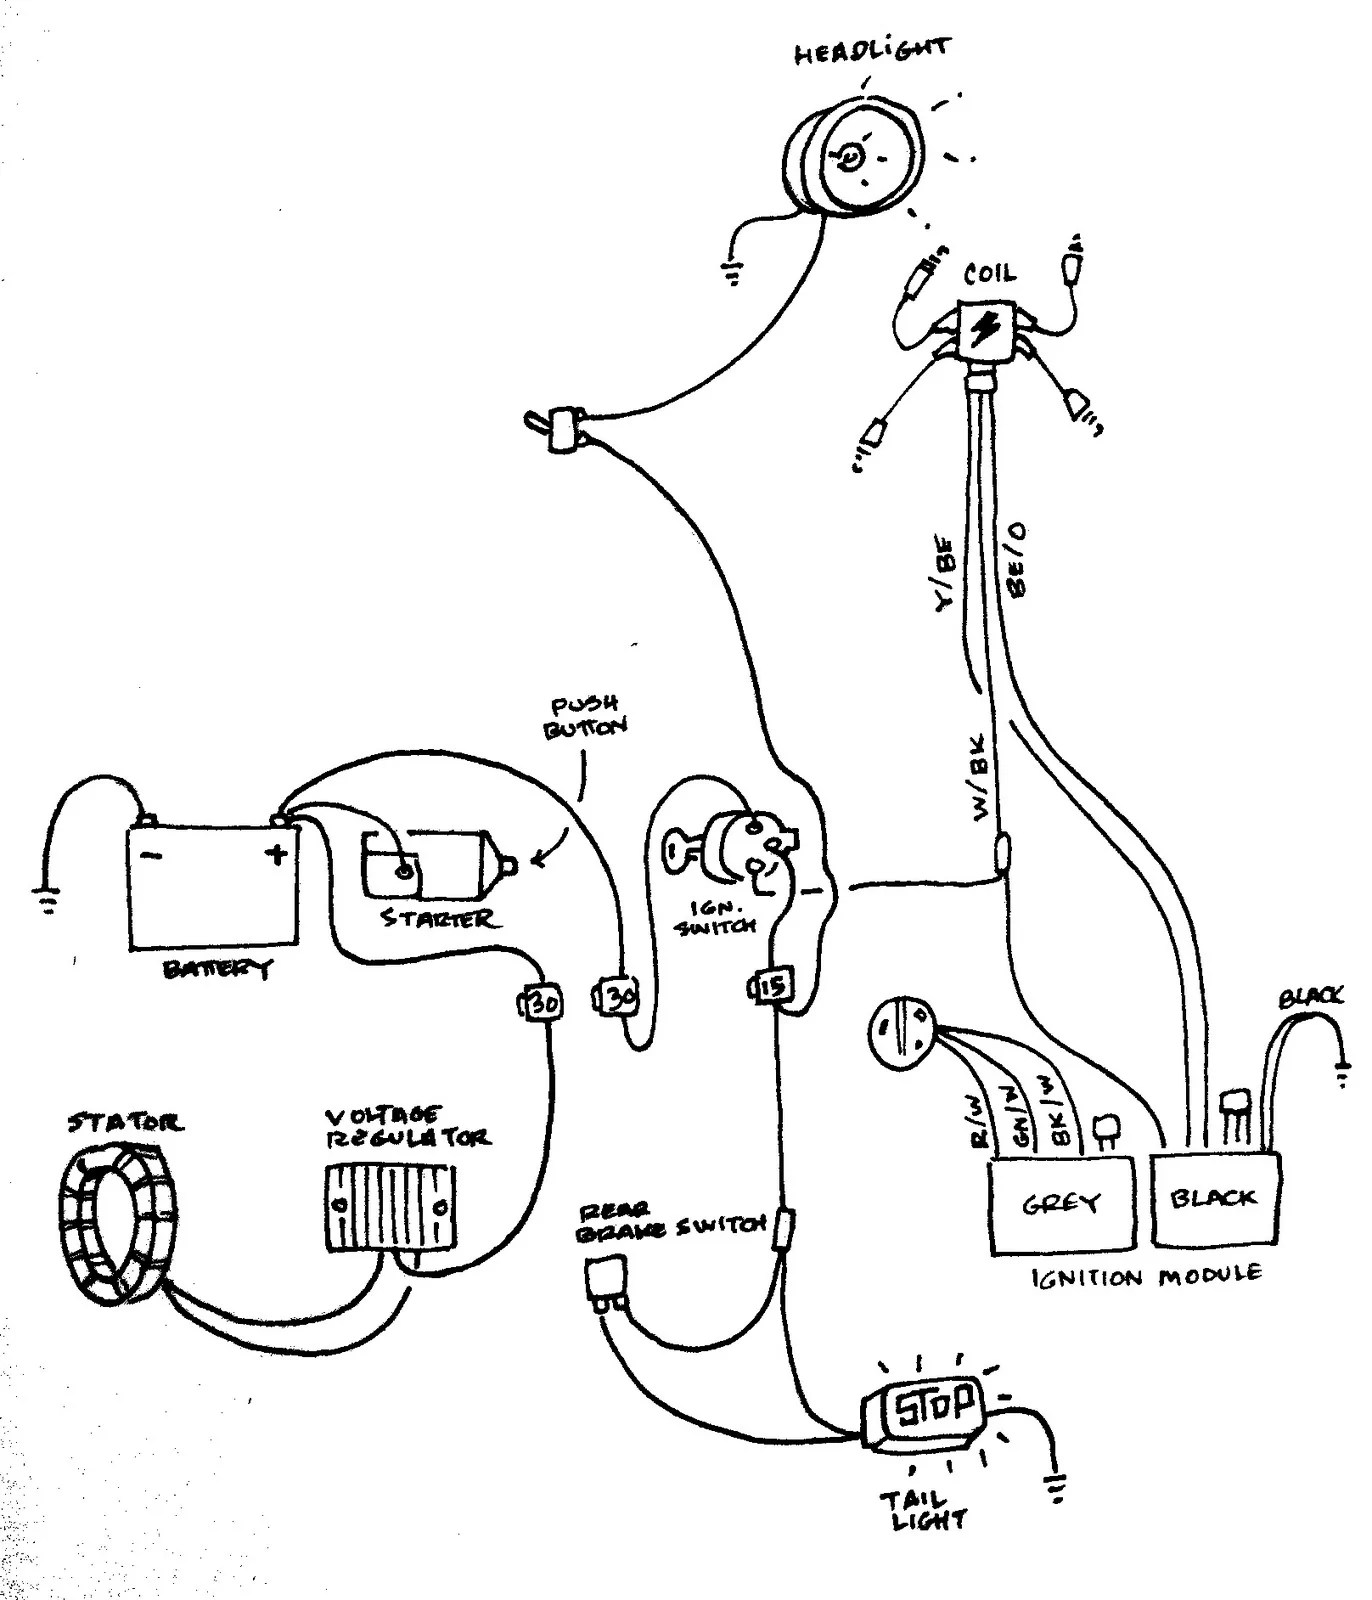 Sporty Wiring How To Biltwell Inc